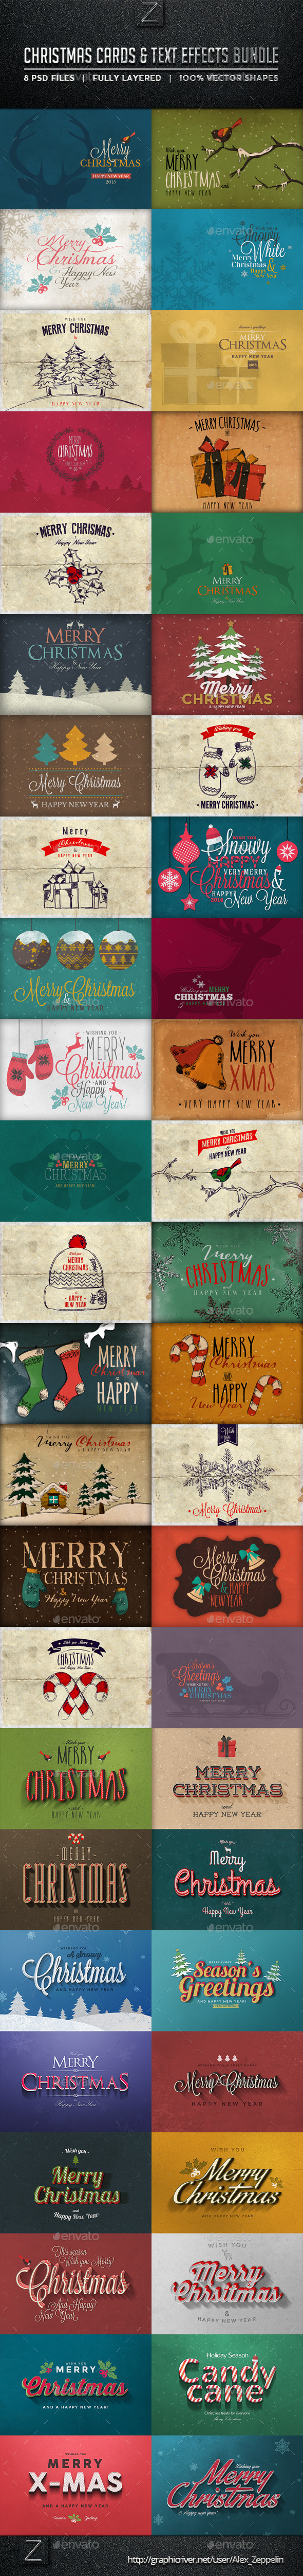 Christmas Cards u0026 Text Effects Bundle